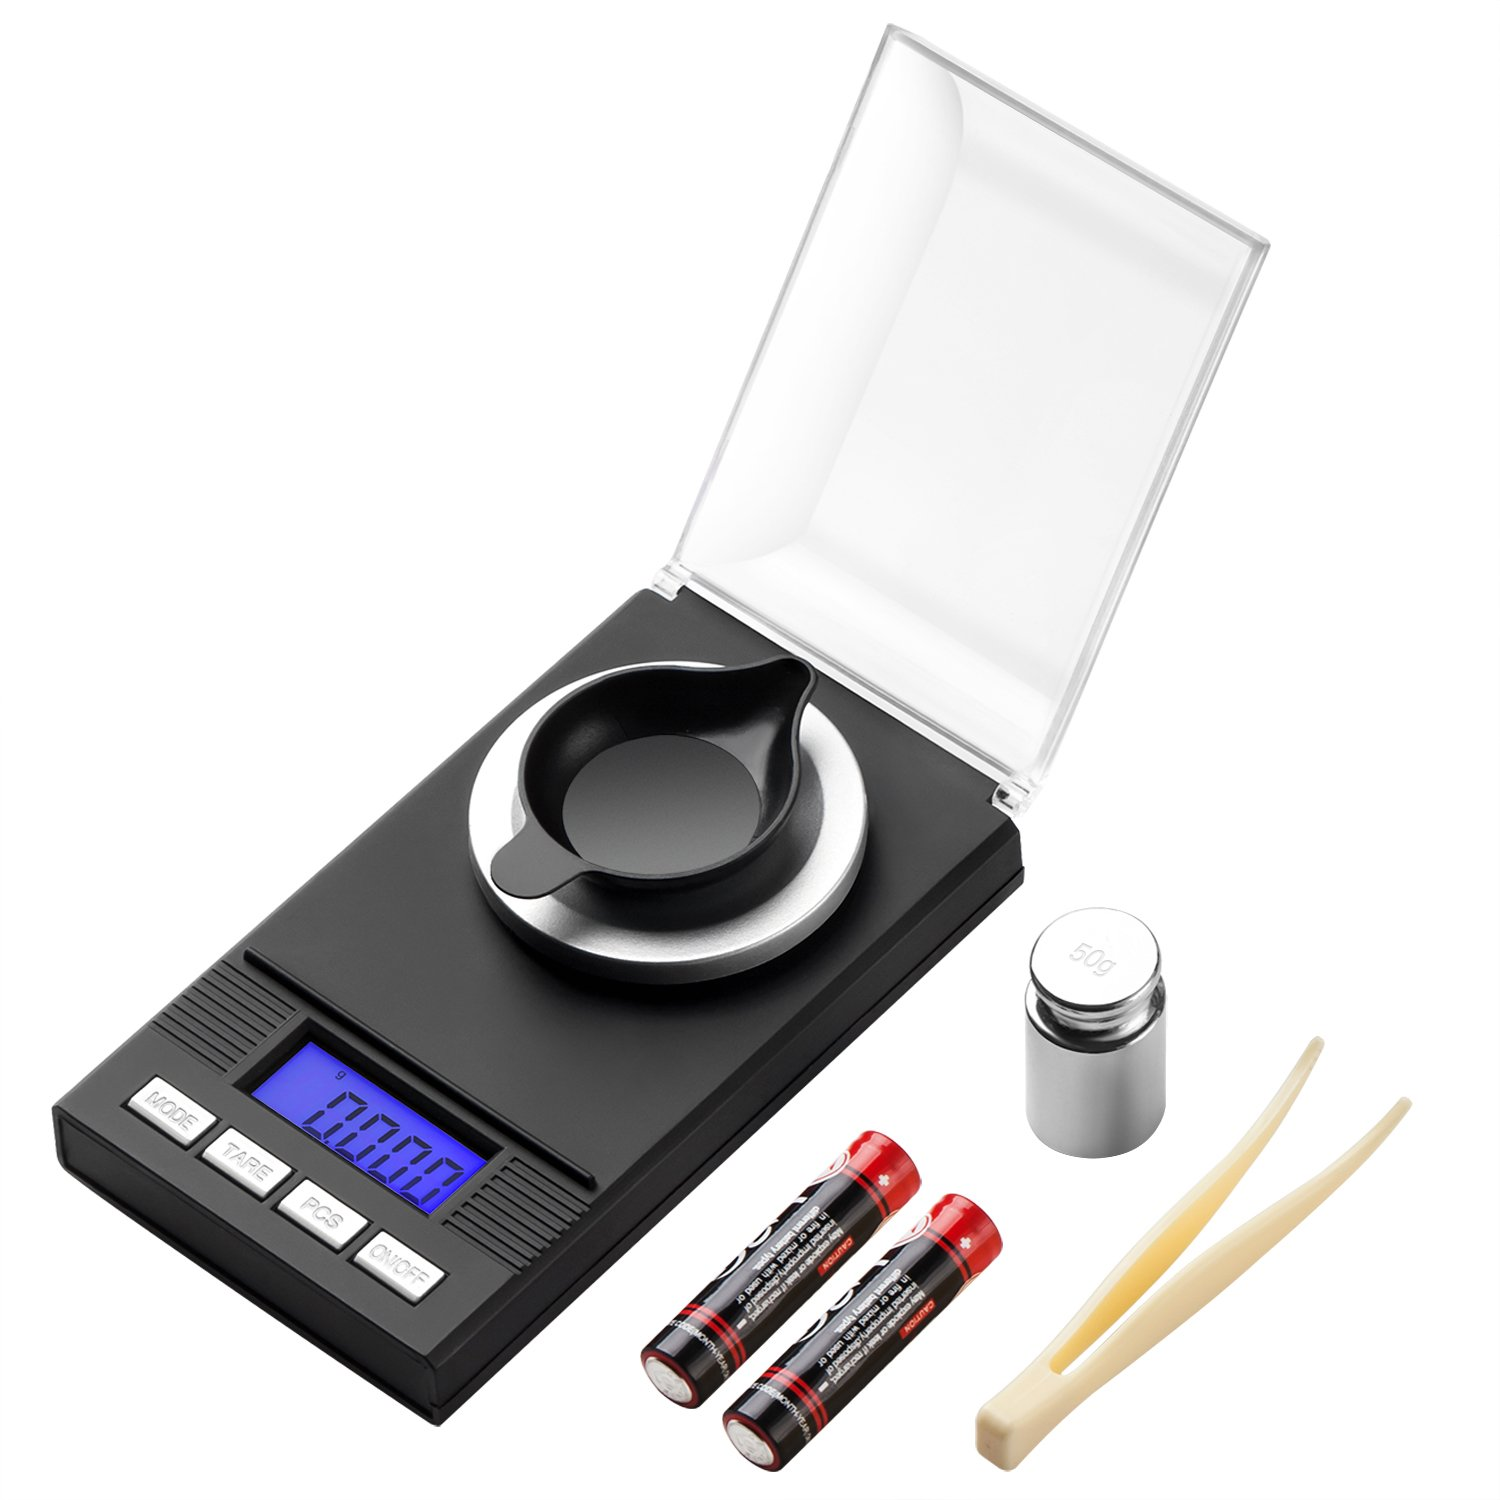 Kntiwiwo 50g/0.001g Milligram Scale Scientific Lab Digital Pocket Scale for Reload with Calibration Weight for Medicine Powder Jewelry Weighing by Kntiwiwo